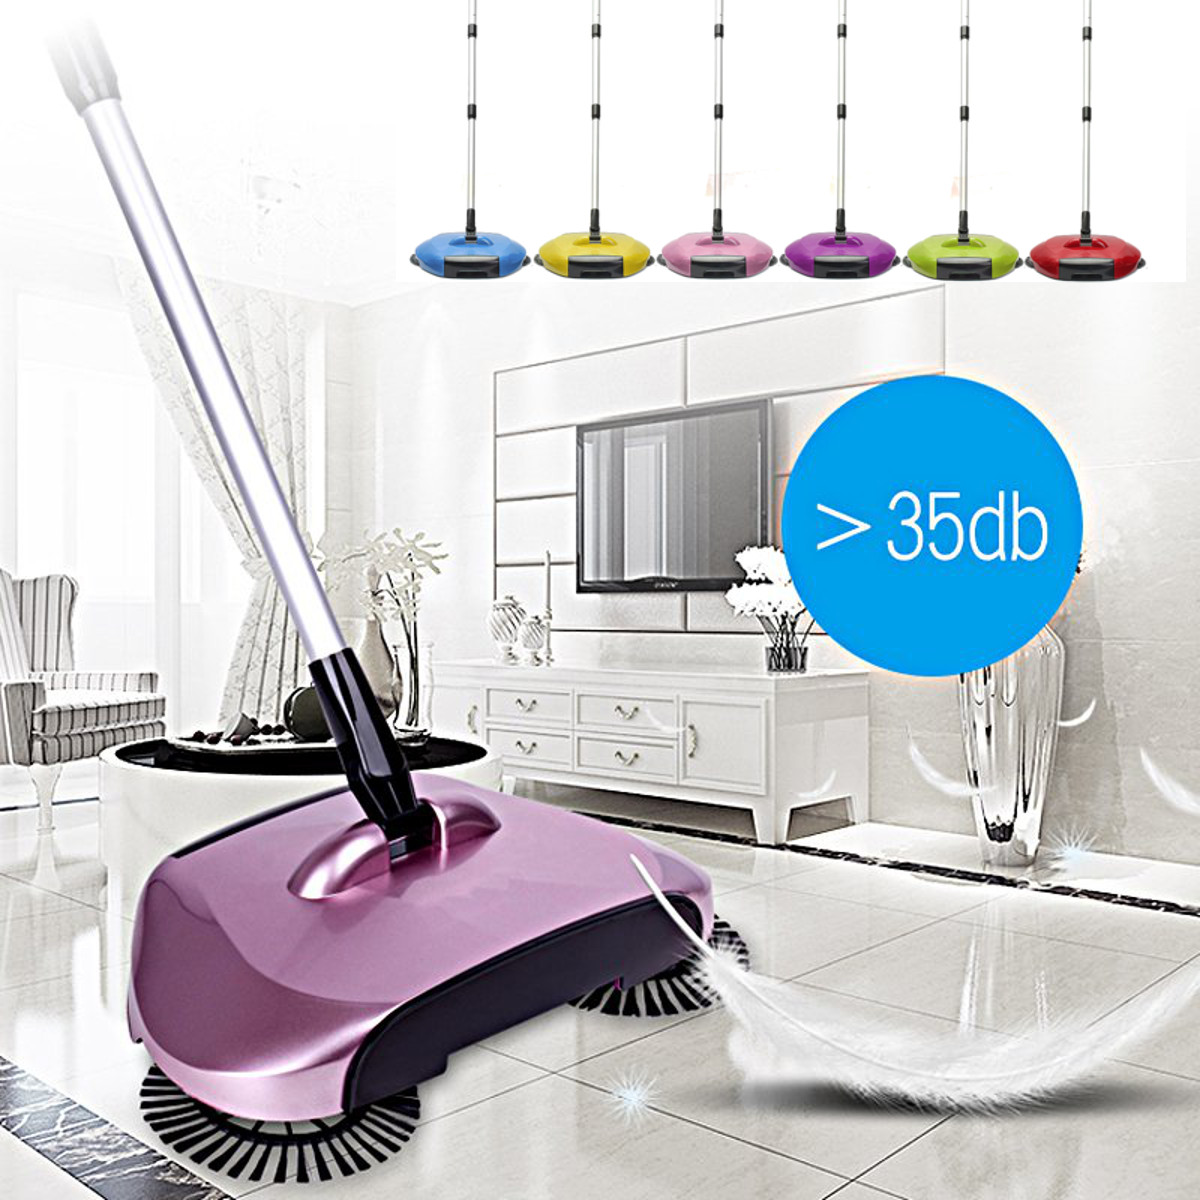 360 Rotation Swivel Hand Push Broom Sweeper Floor Sweeper Cleaner Household Floor Surface Cleaning Mop